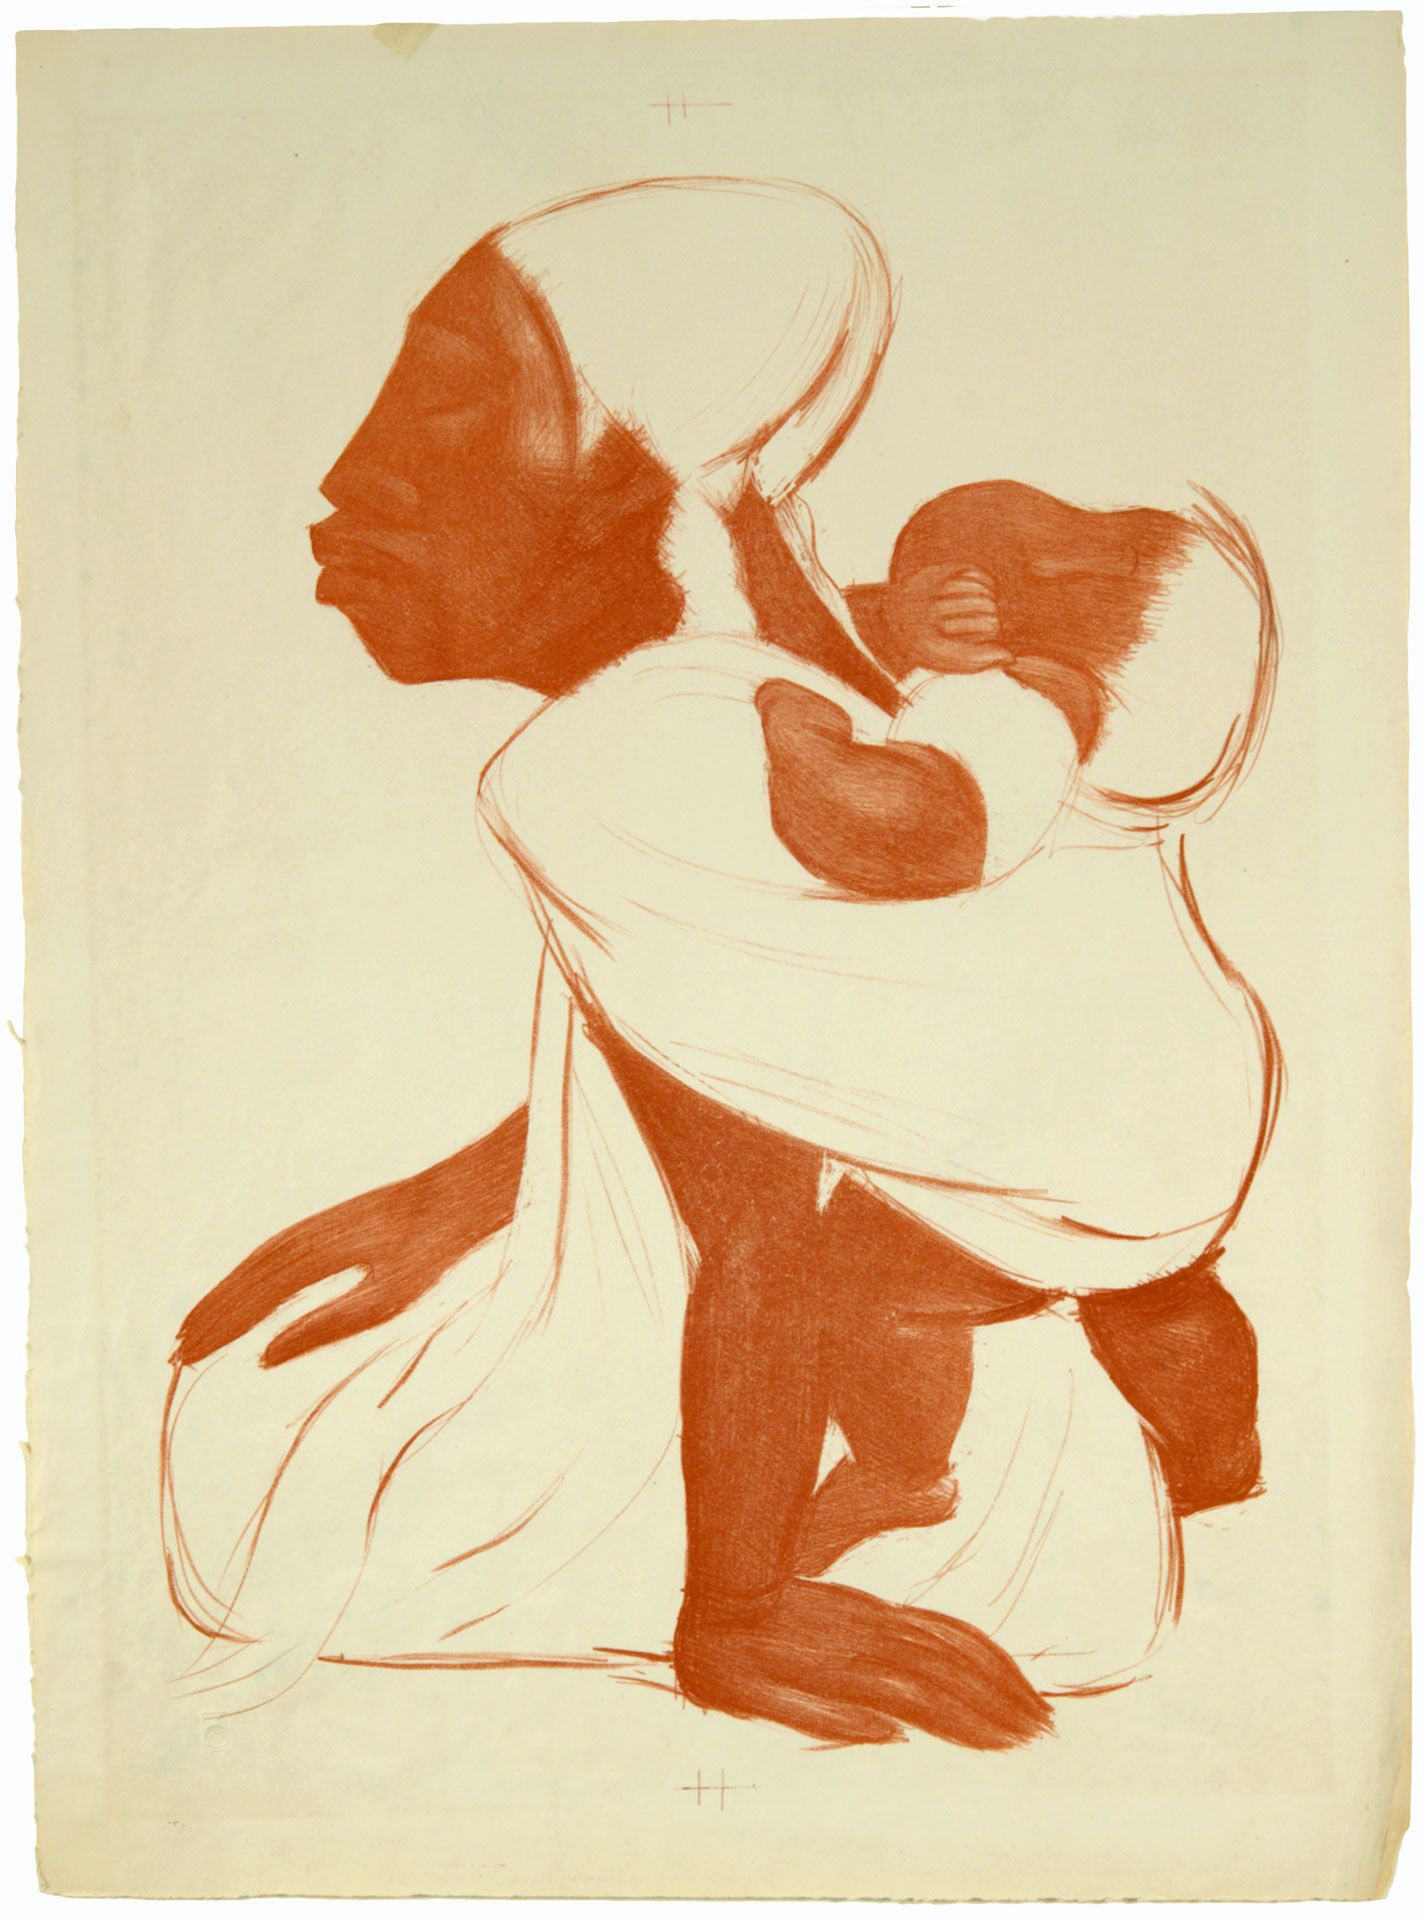 Jean Charlot, Mother with Child on Back, 1933. Lithograph. Gift of Mr. and Mrs. Jack Lord.